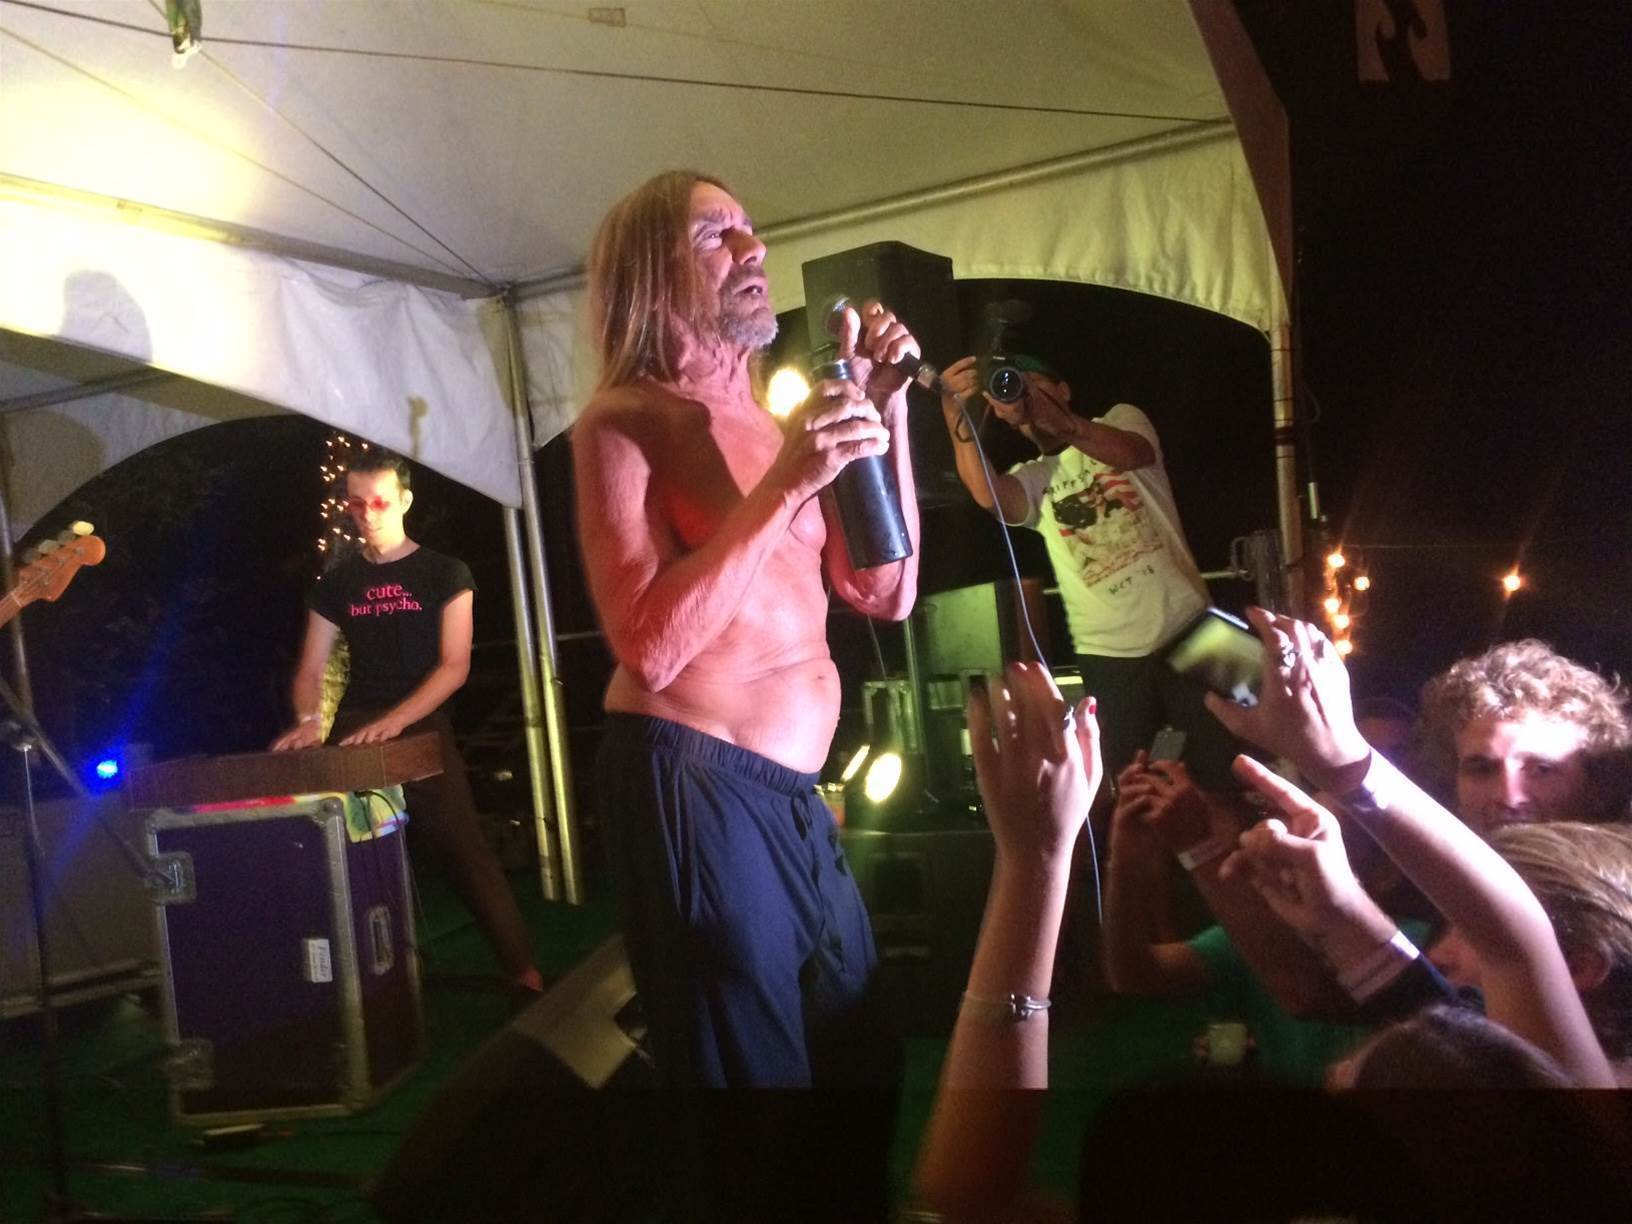 The Night Iggy Pop Played in a Pipeline Backyard